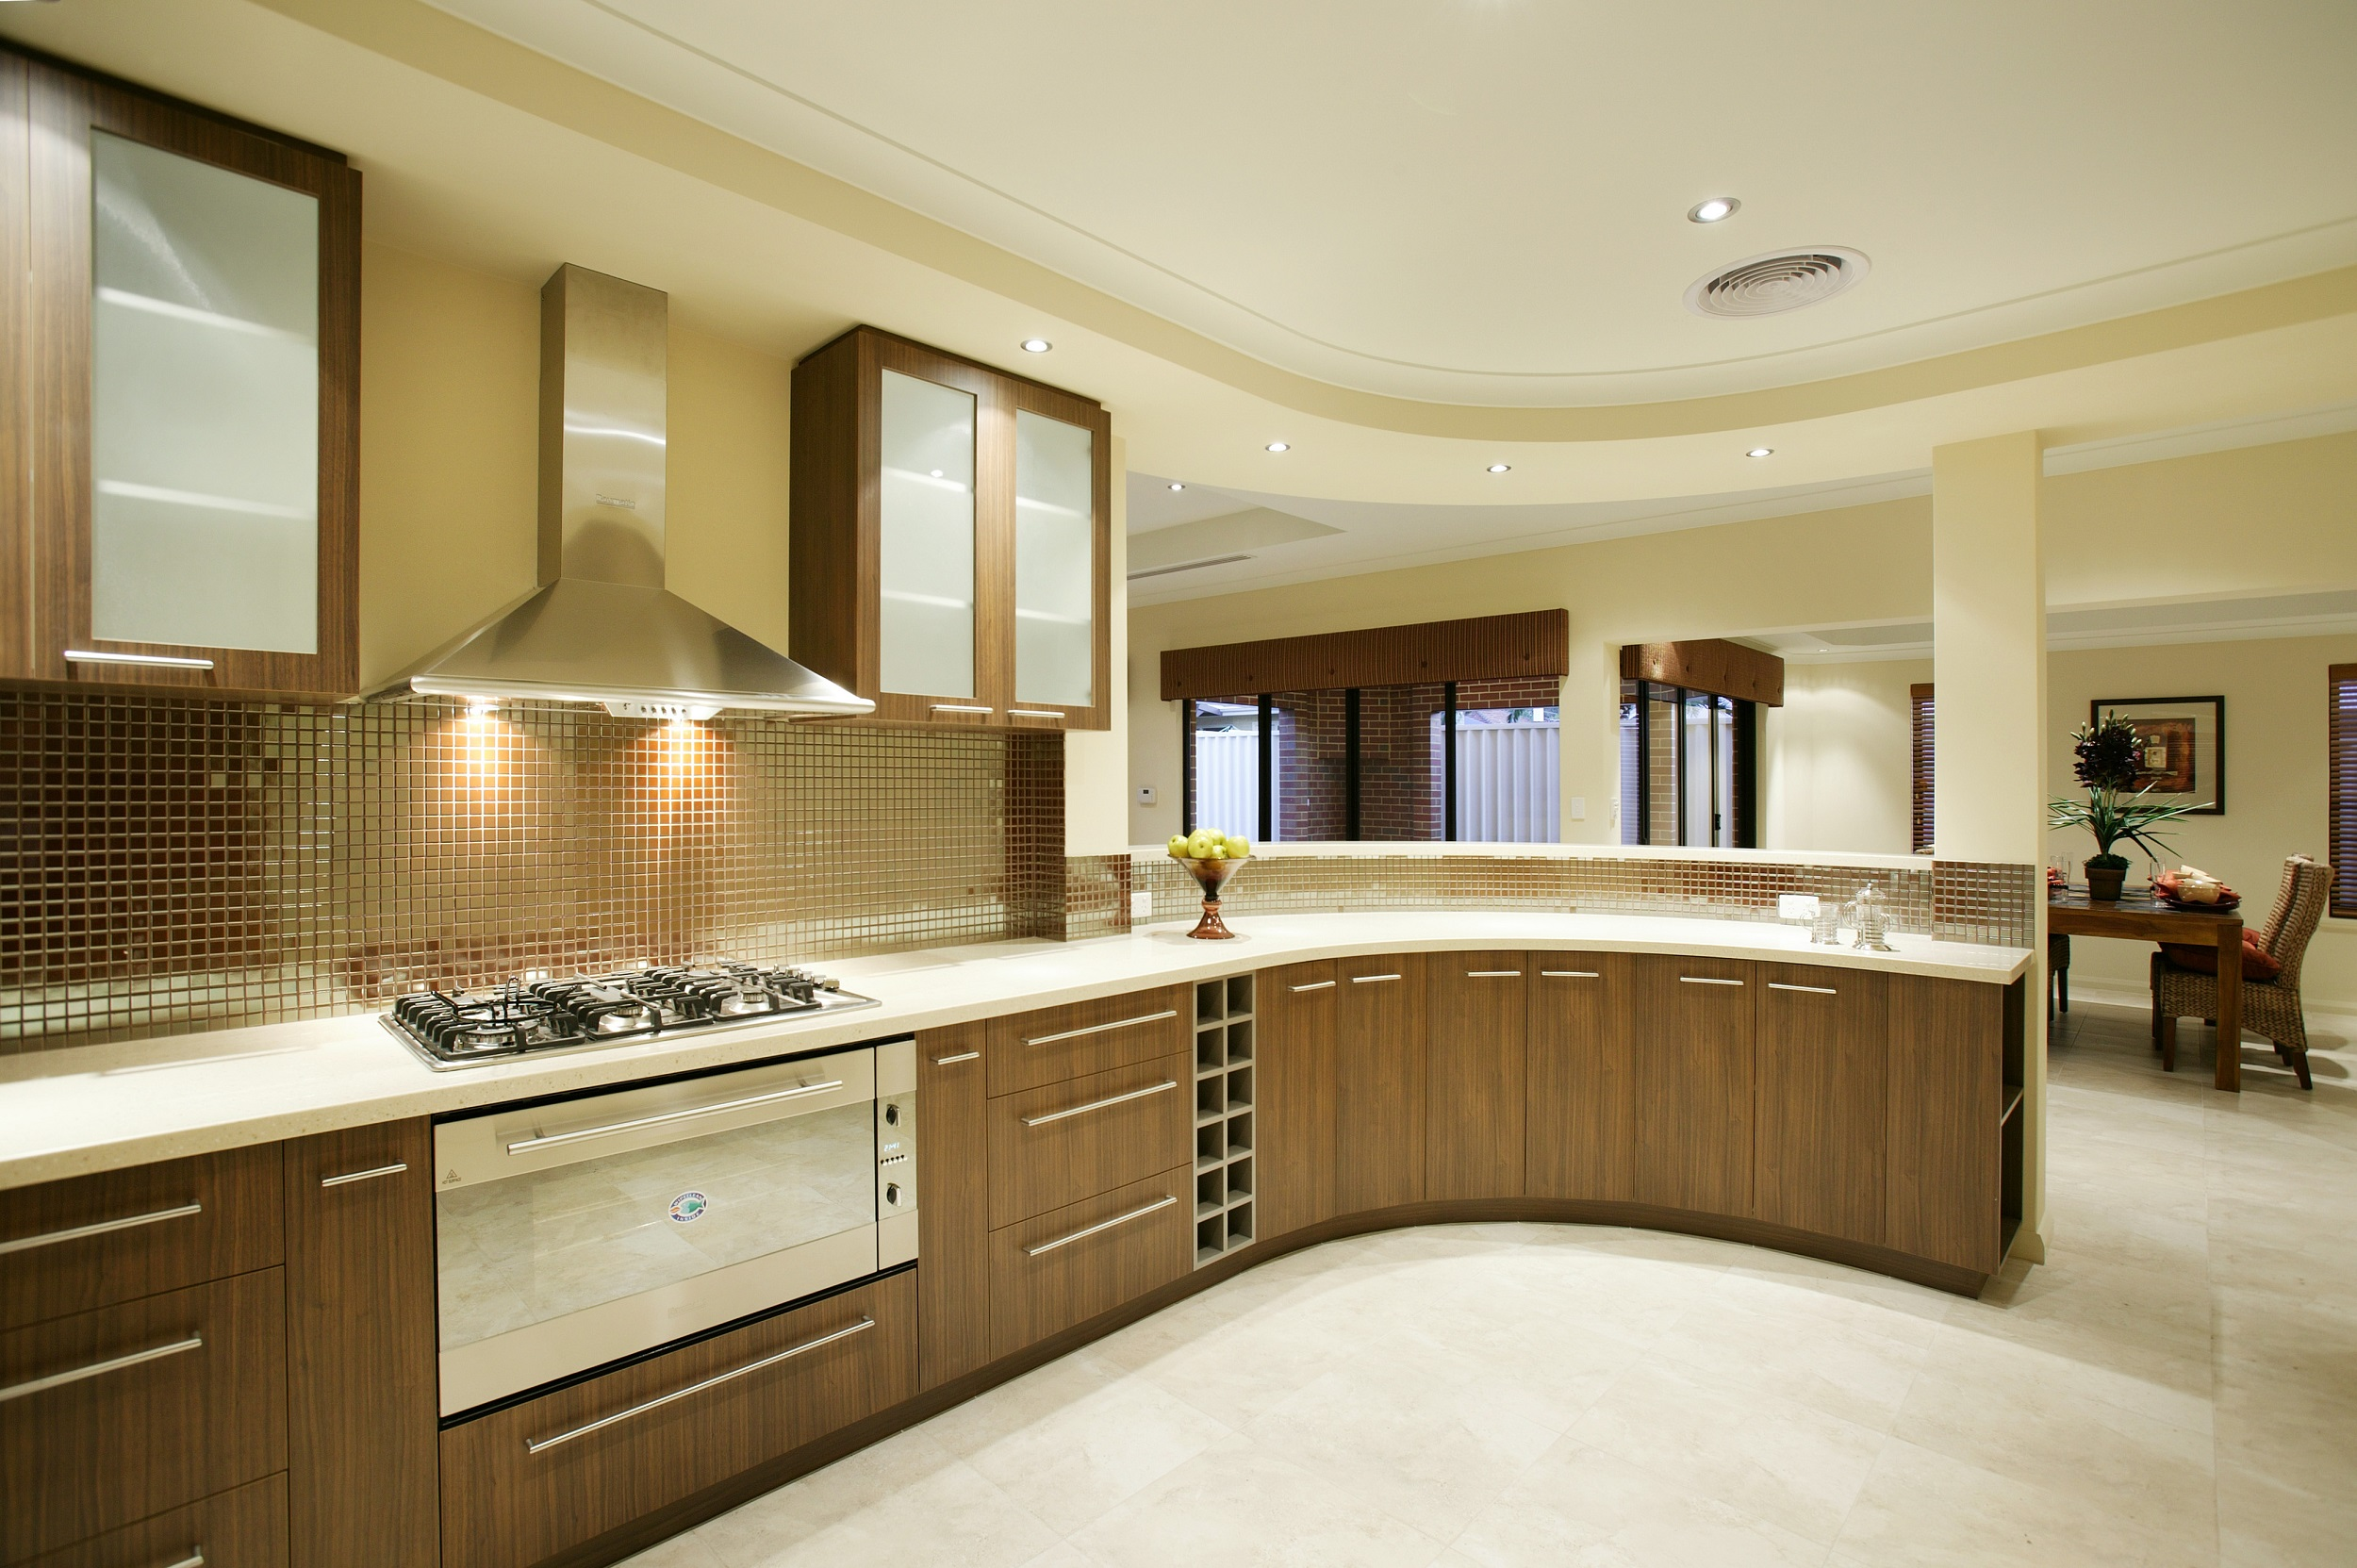 modular kitchens free 3d kitchen design software goodluck reviews and ratings image